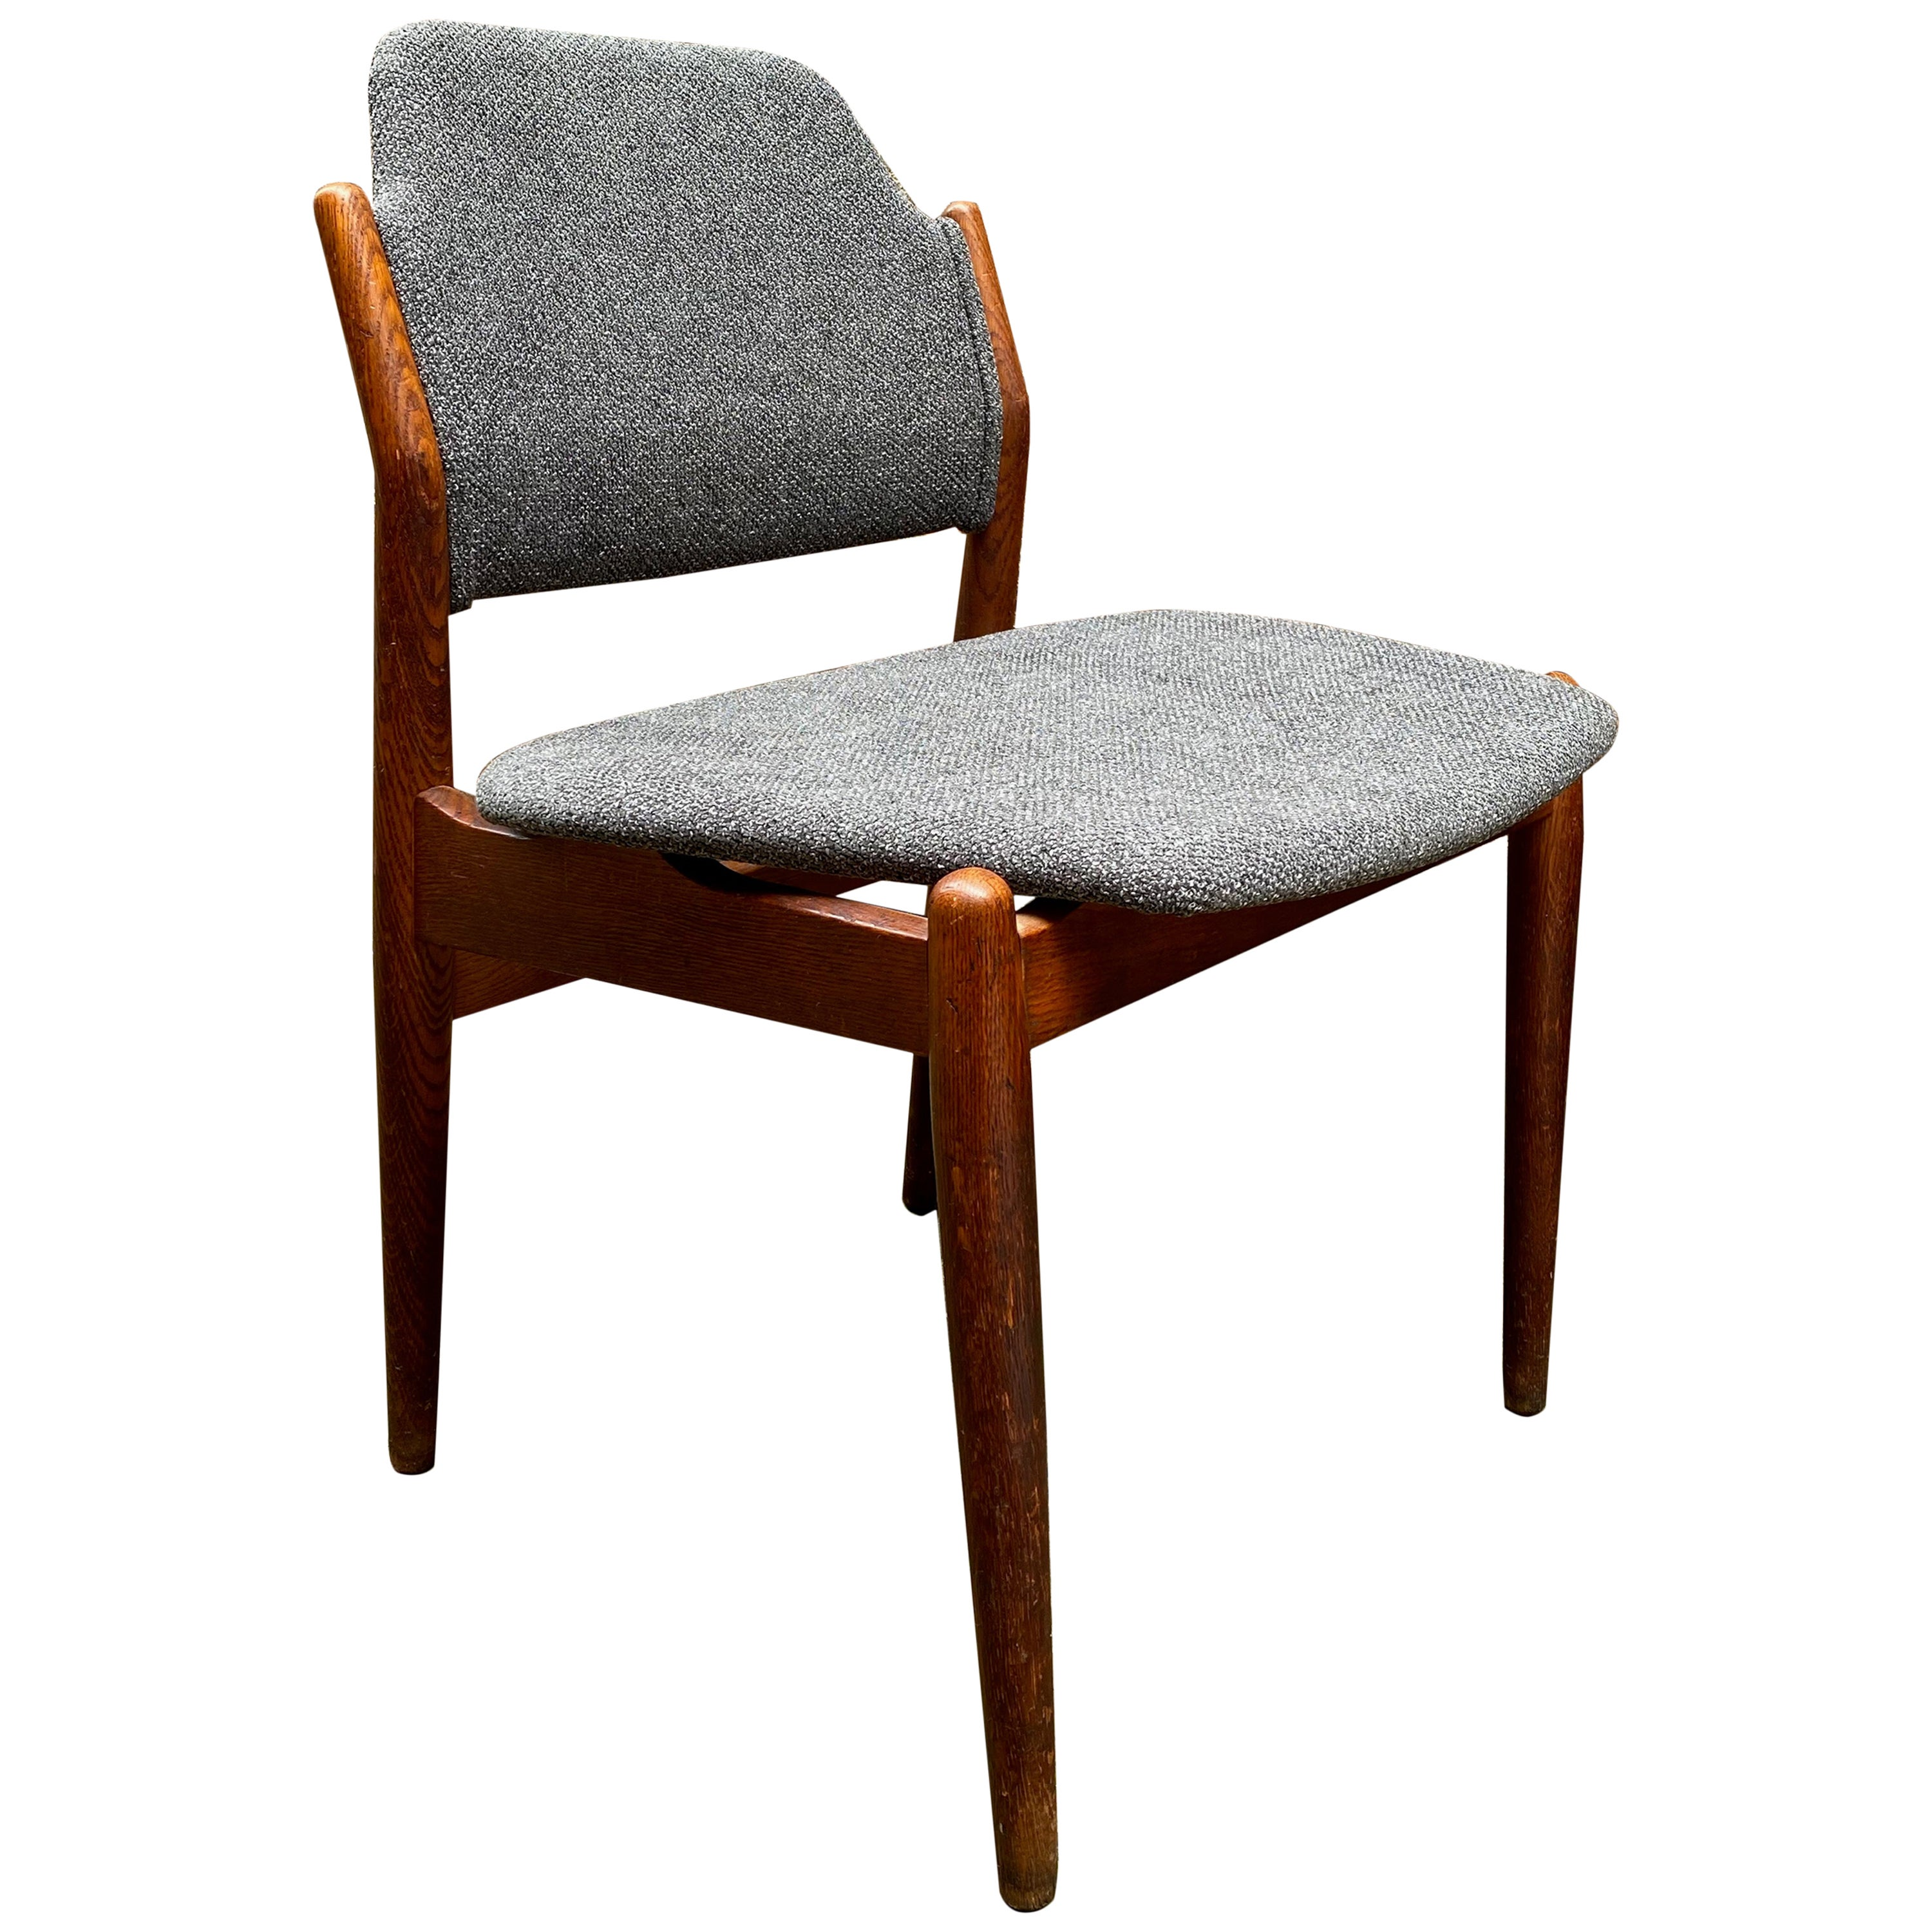 Arne Vodder Sibast Møbler Model 62 Oak Side Chair